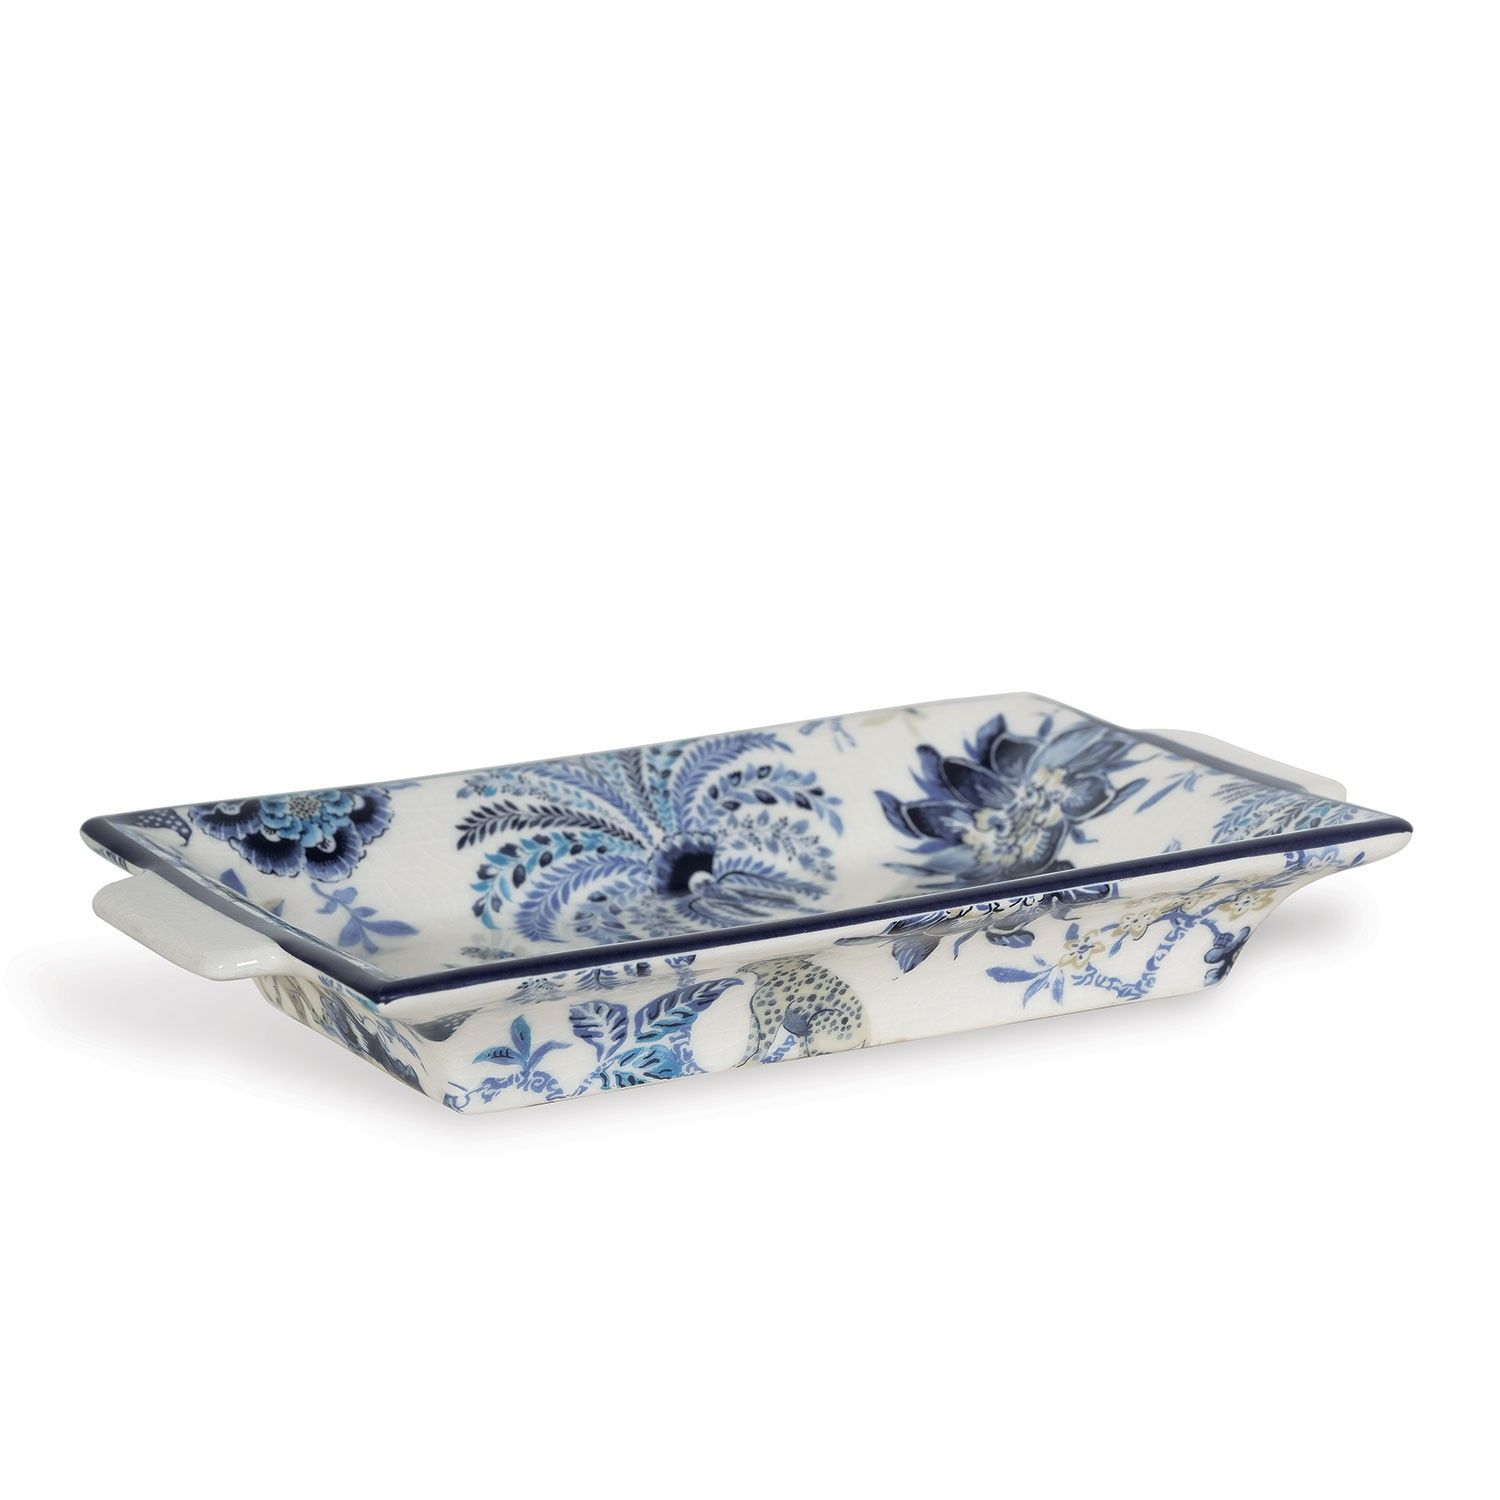 Decorative Tray New Williamsburg Collection Blue And White Decorative Tray Inspiration